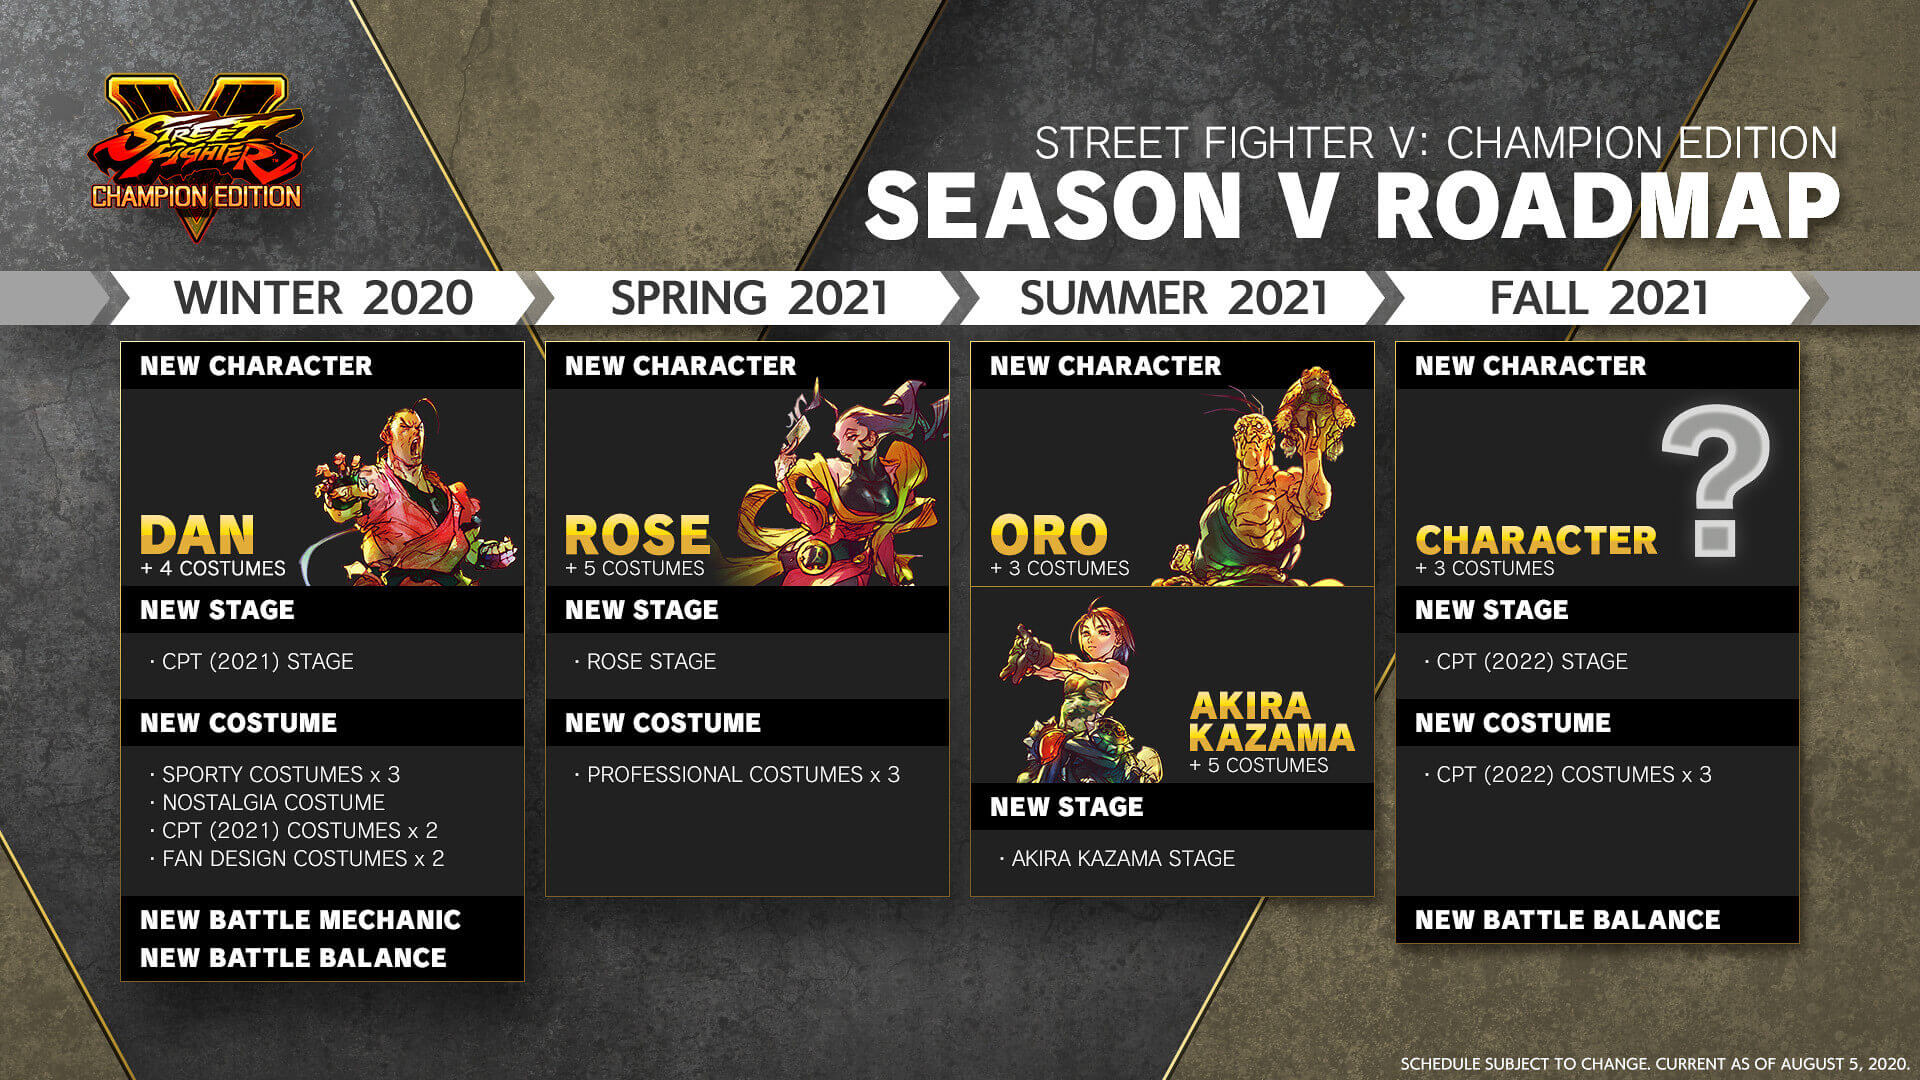 Street Fighter V Season 5 - plan on releasing new characters